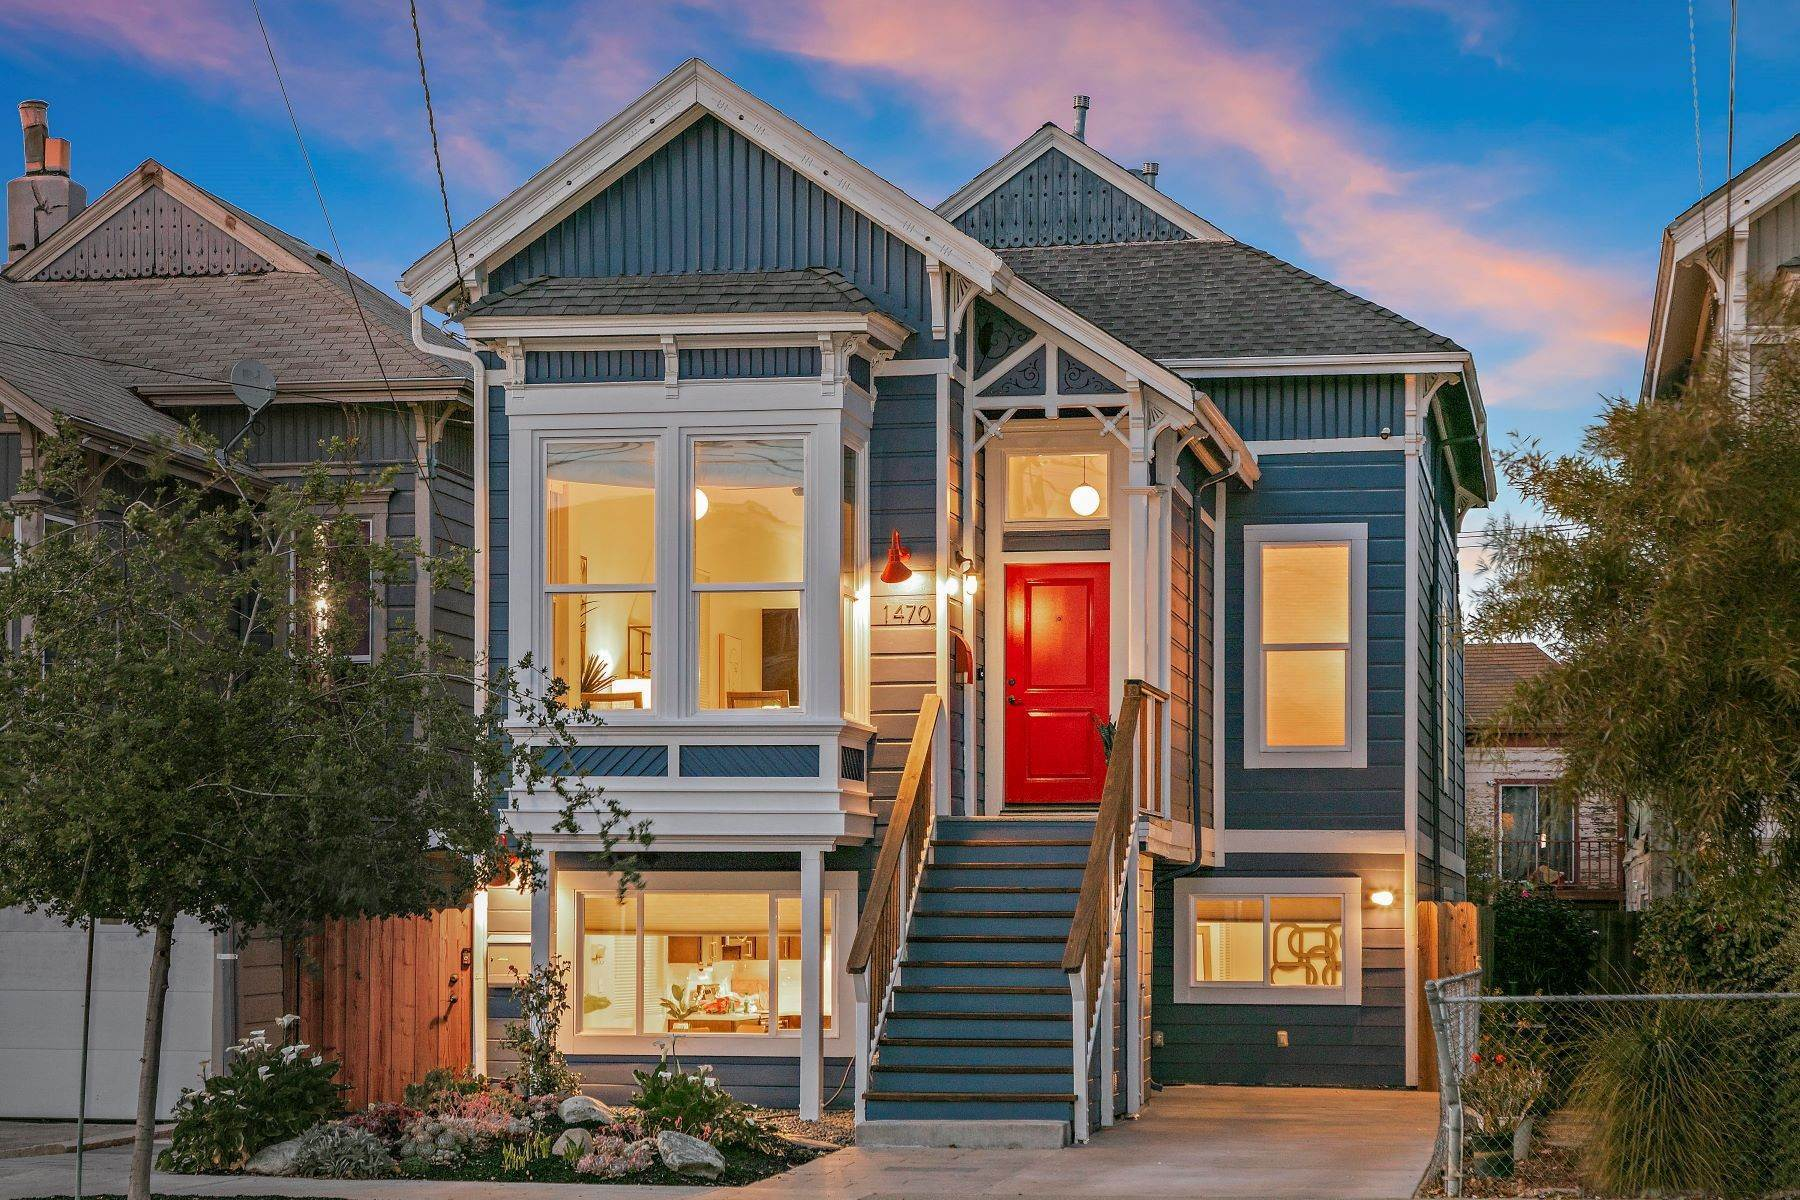 Single Family Homes for Sale at 'The Blue House' - Eastlake Style Victorian 1470 12th Street Oakland, California 94607 United States